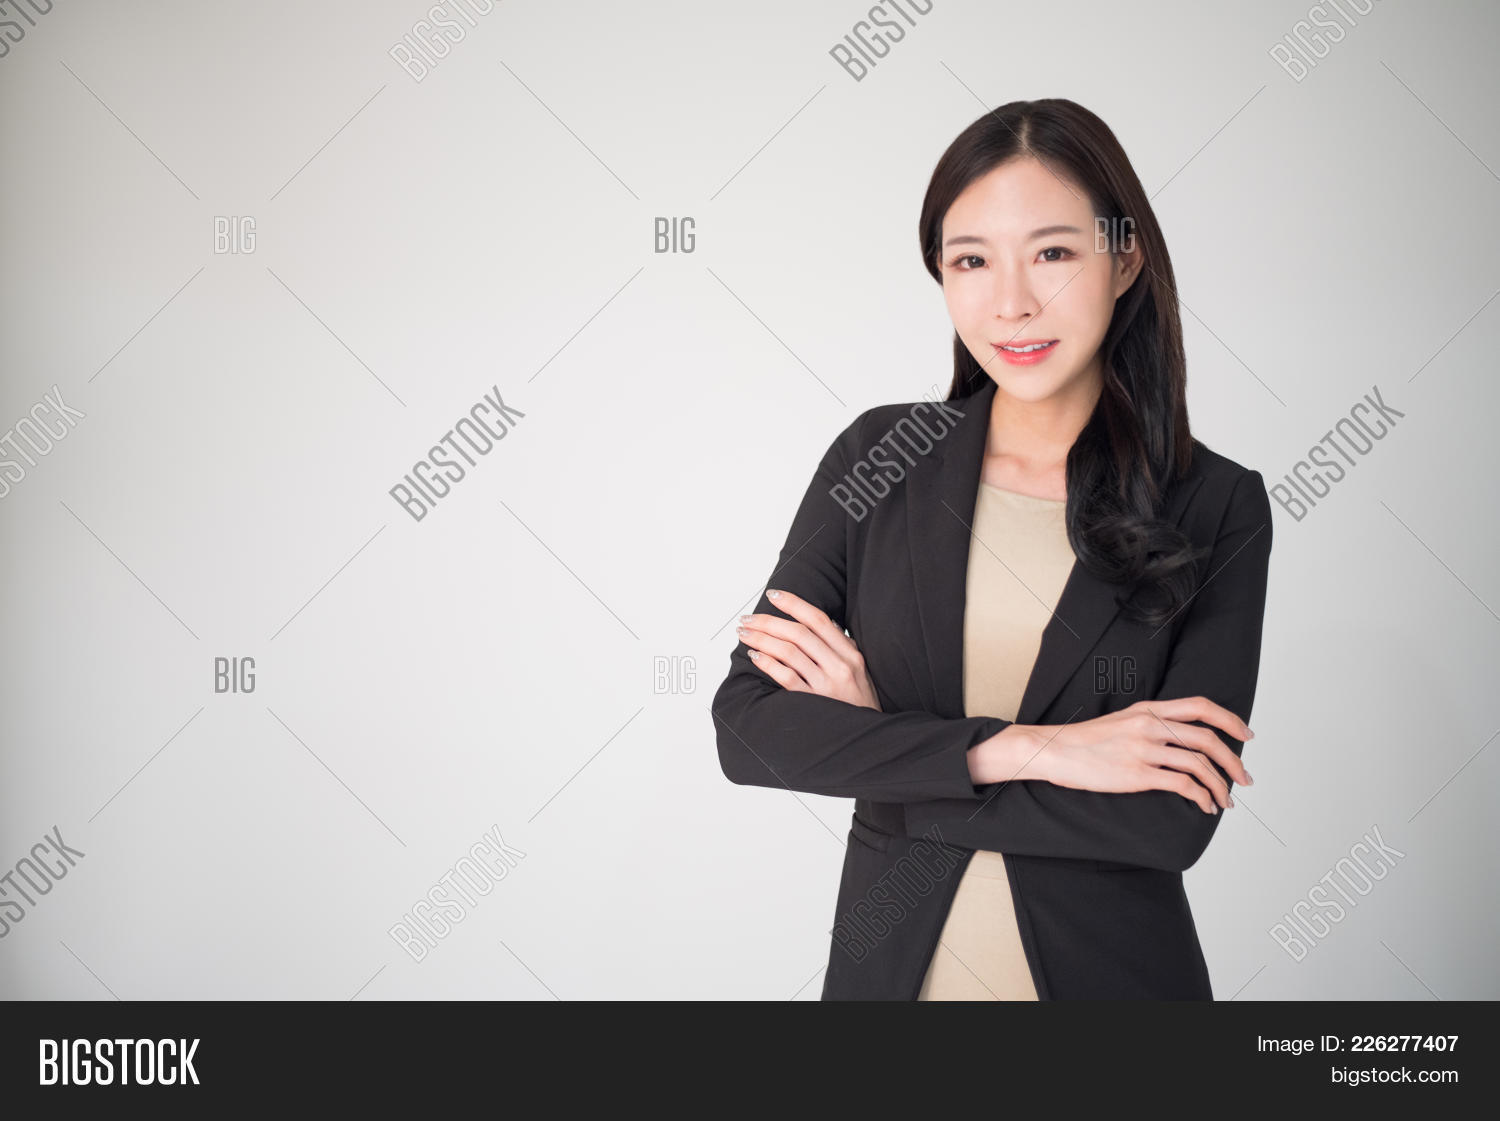 Asian Business Woman Image  Photo Free Trial  Bigstock-8648